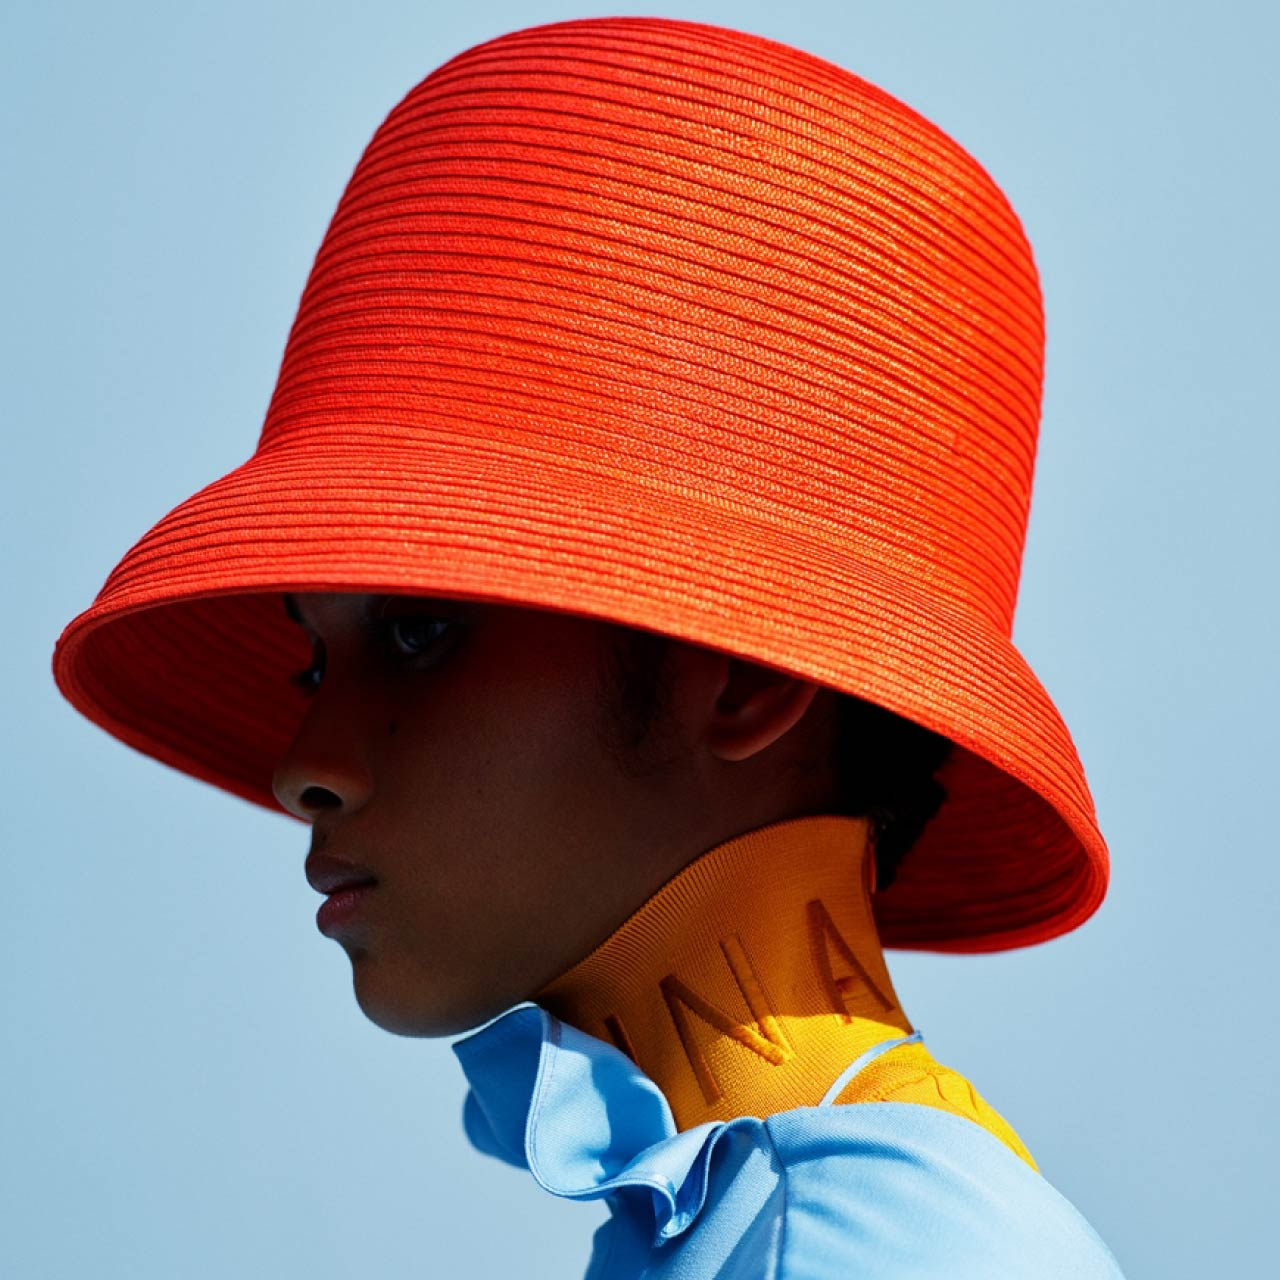 Couture Sensibilities at Botter and Nina Ricci | The Cutting Class. Nina Ricci, Spring 2020. Bold red cloche hat.